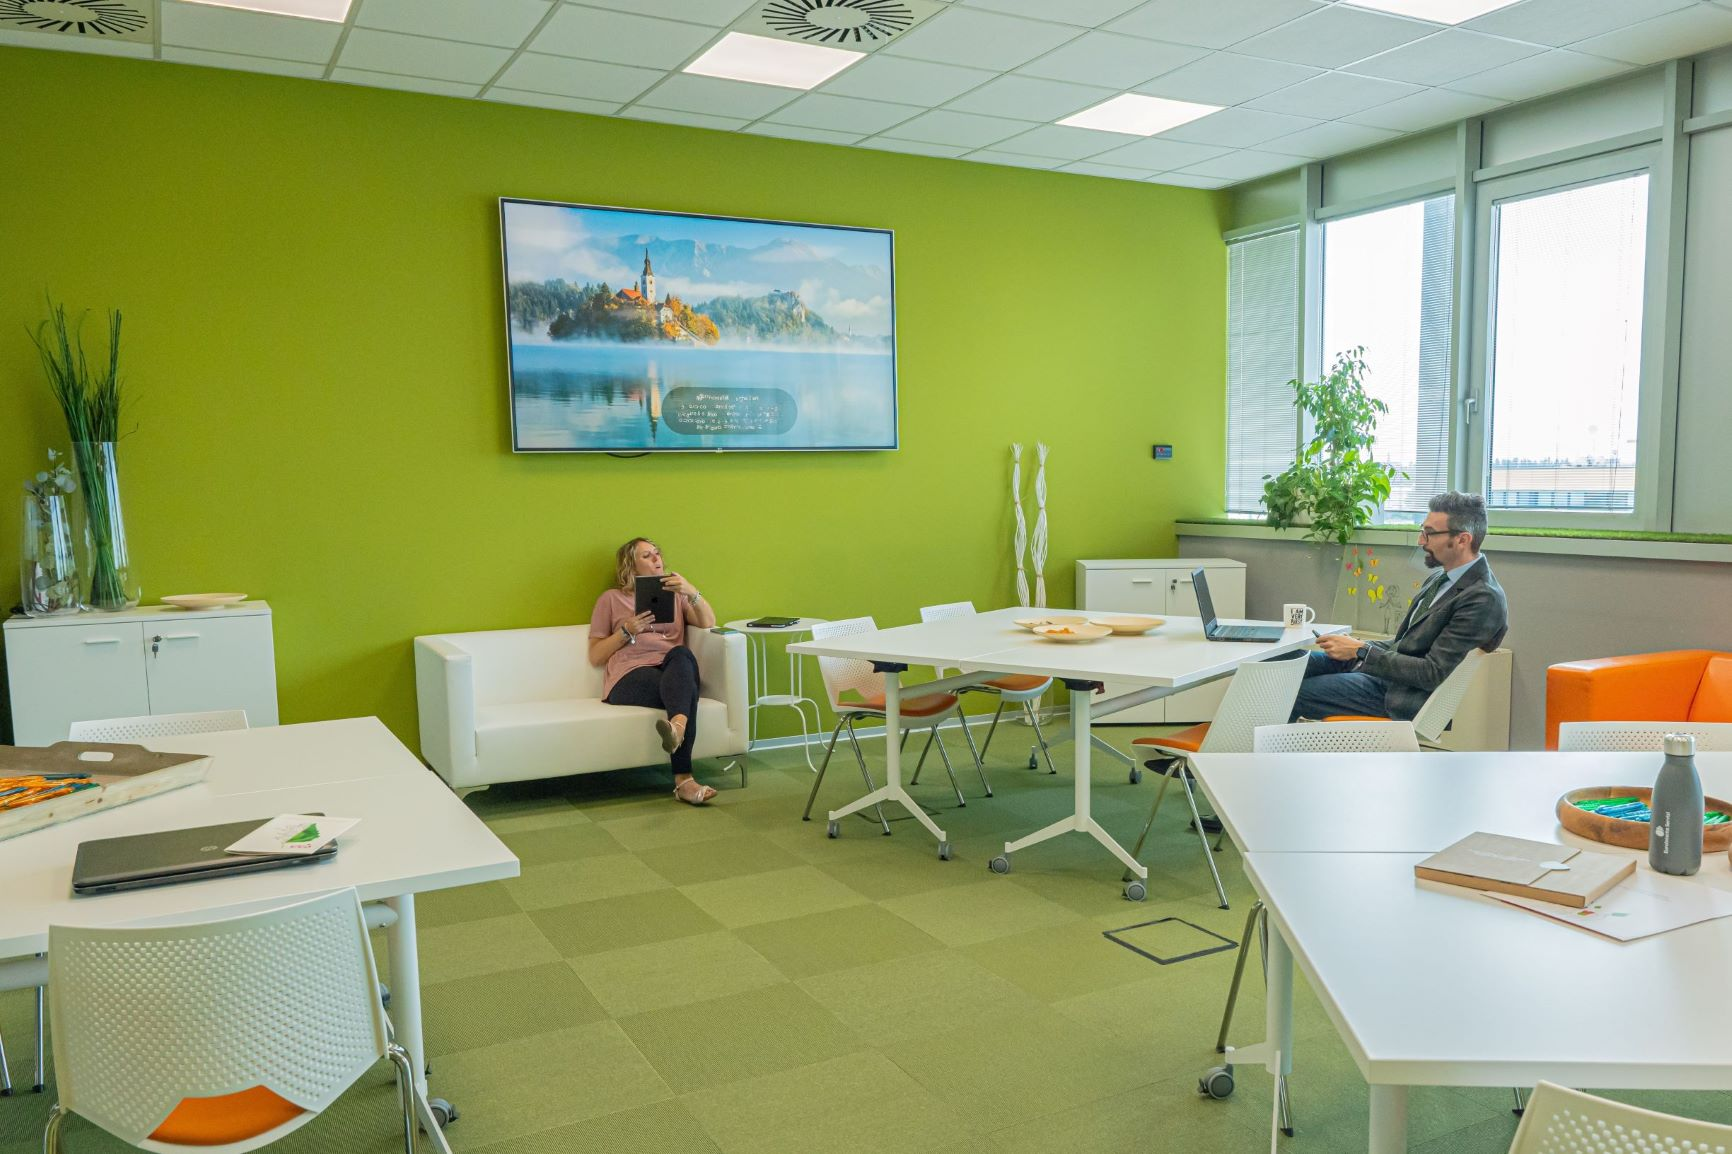 City coworkingarden - Coworking 3 by eis